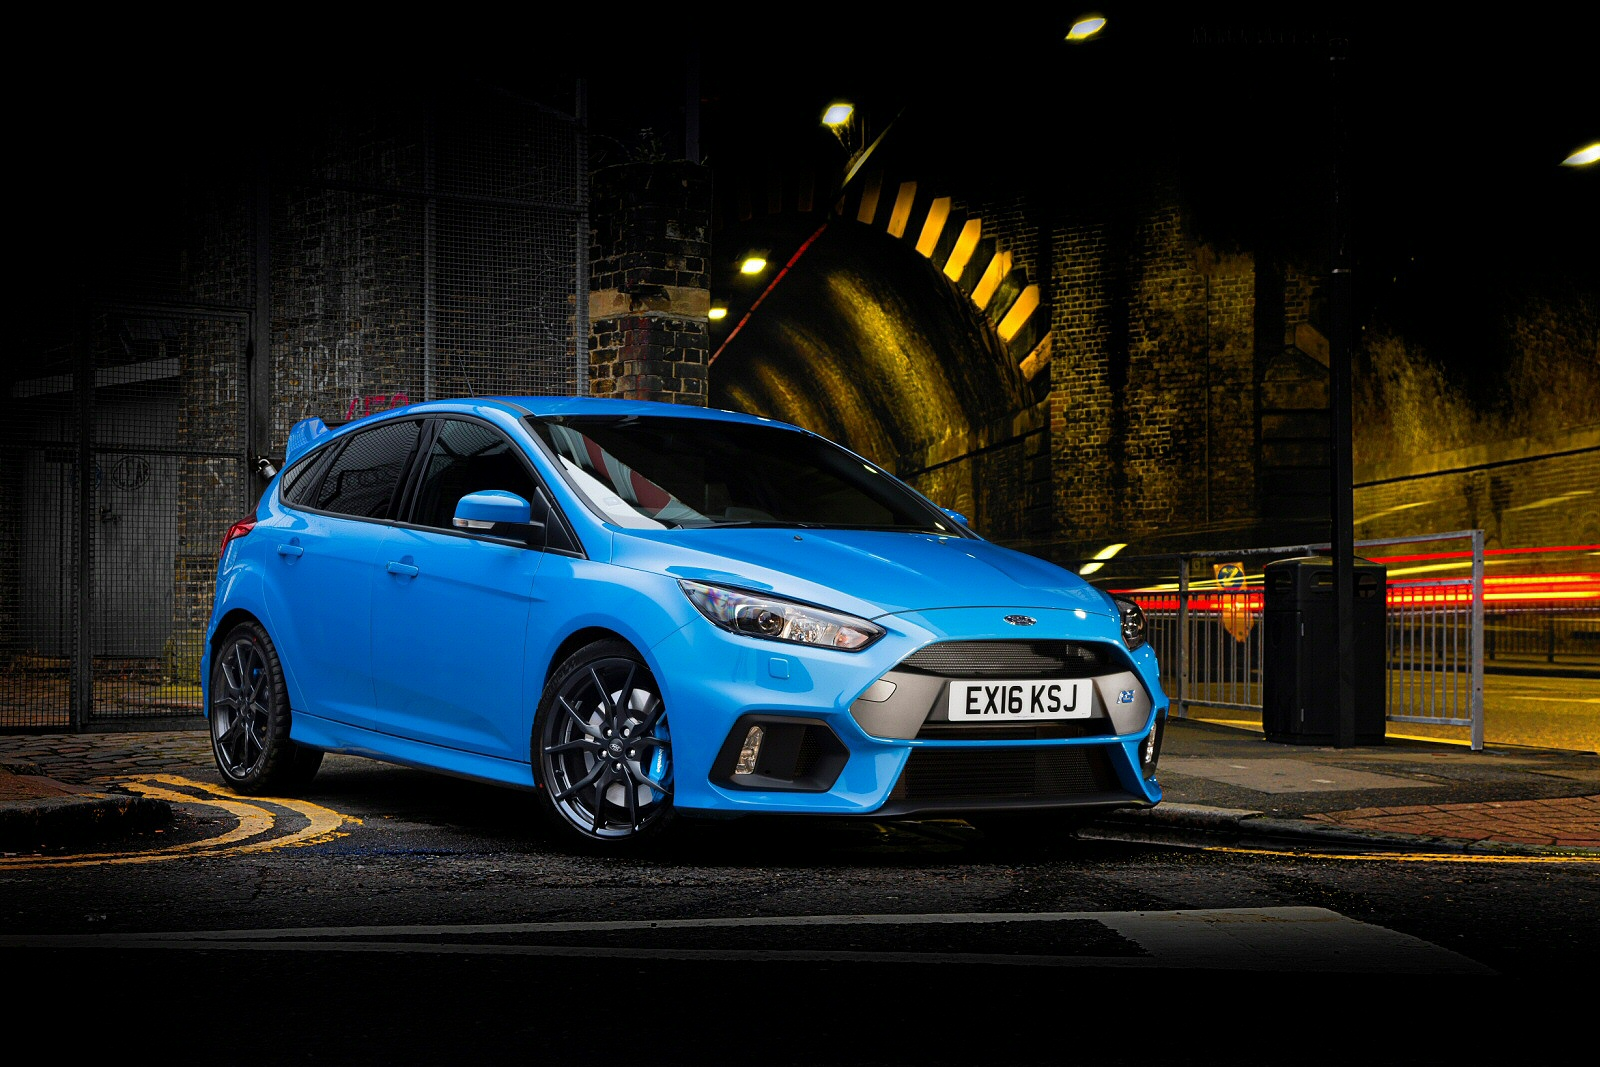 синий автомобиль ford focus rs  № 215509 бесплатно